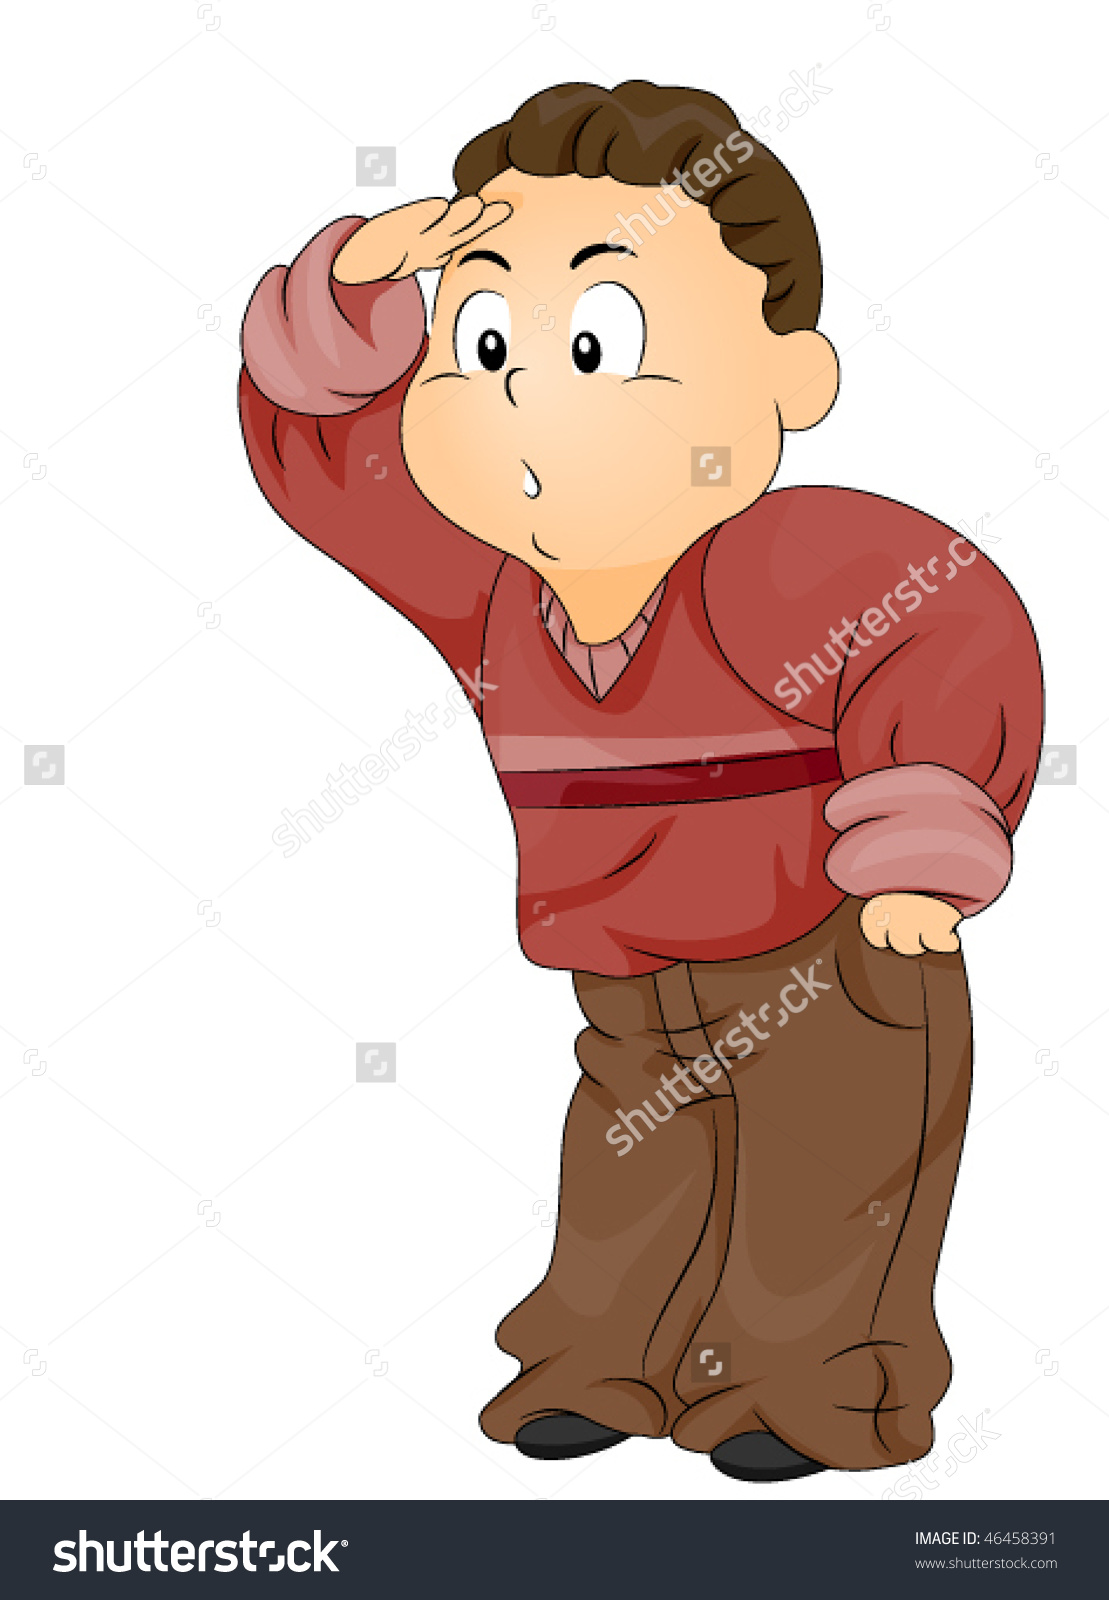 Child Searching Looking Something Vector Stock Vector 46458391.